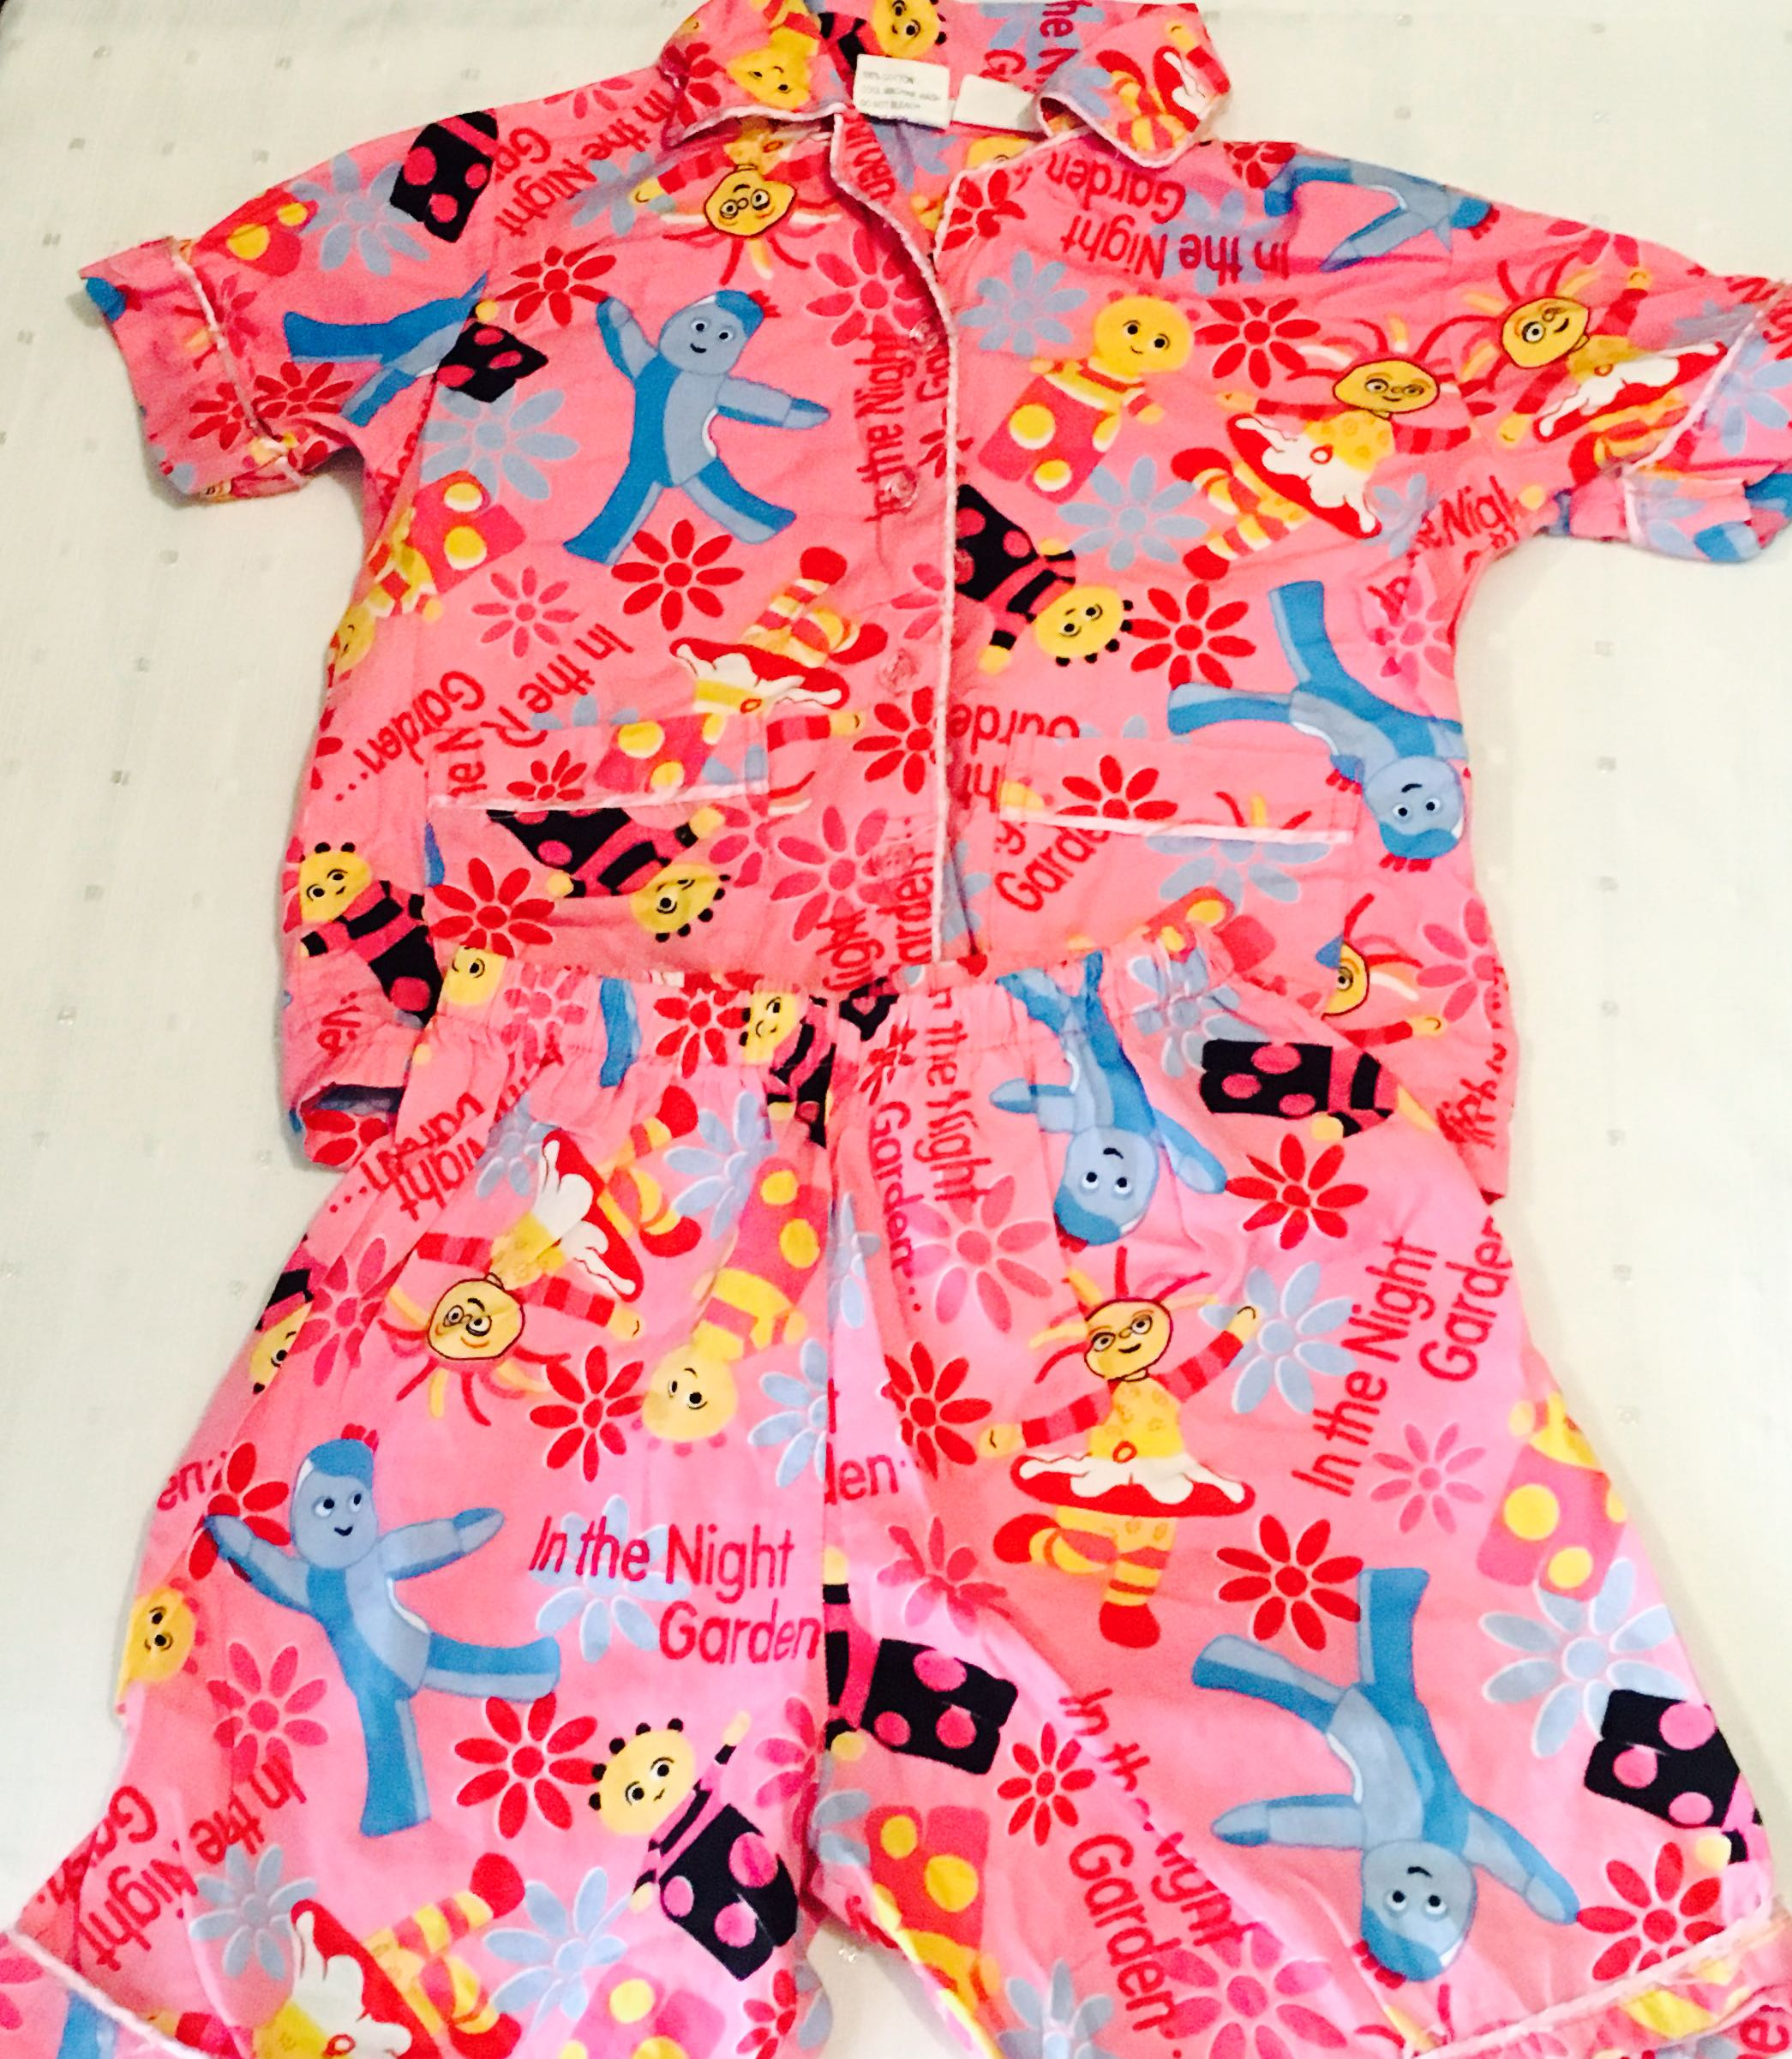 f463dbcc8 In the Night Garden Girls Pajama Top Shirt Polo Shorts Set Size 4 ...